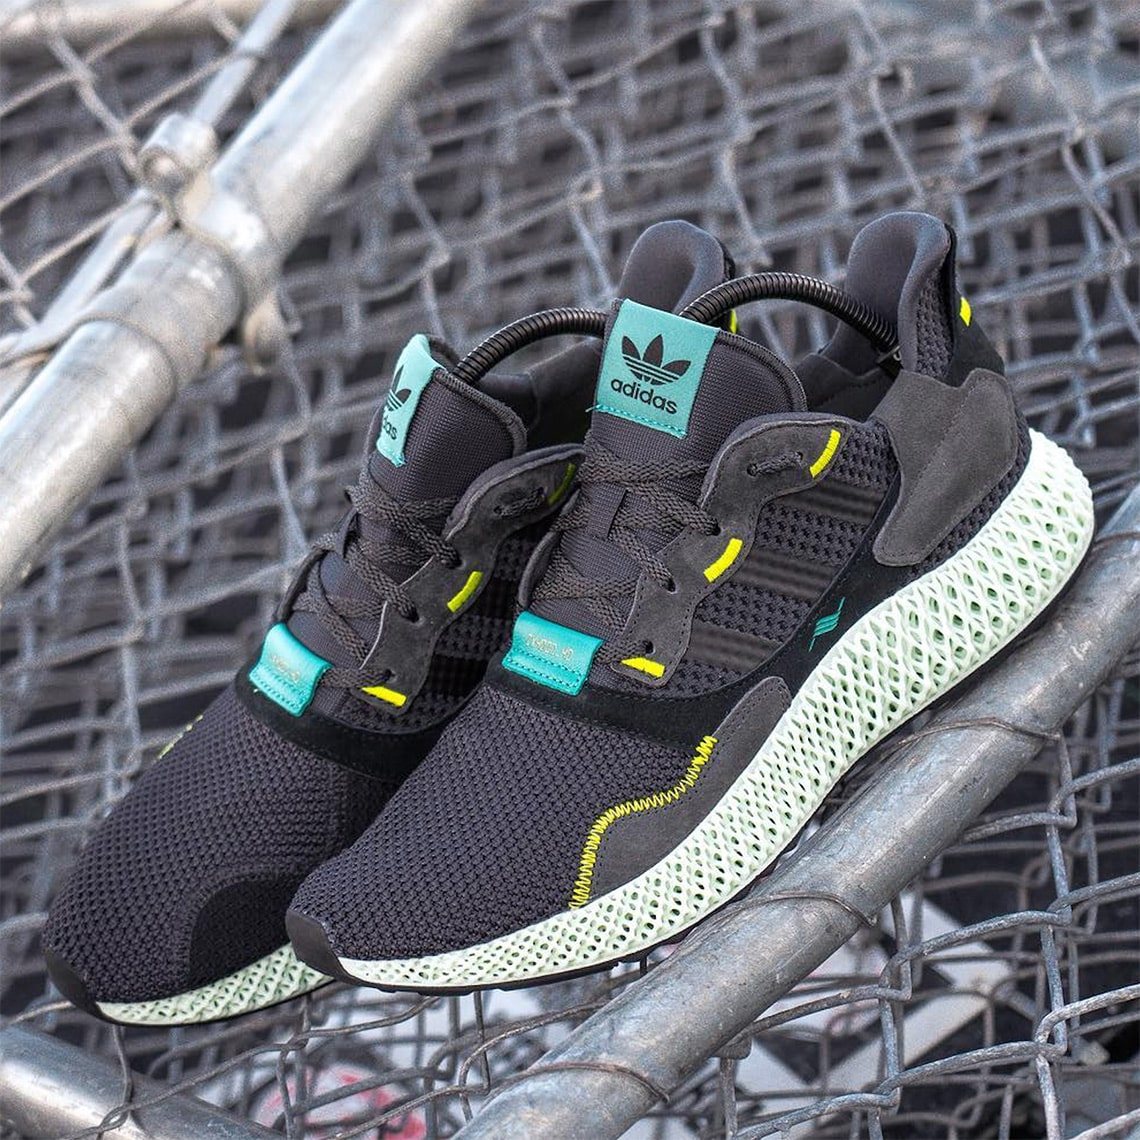 """8444f01d6e54e First Looks at the adidas ZX4000 4D """"Carbon"""" - HOUSE OF HEAT ..."""